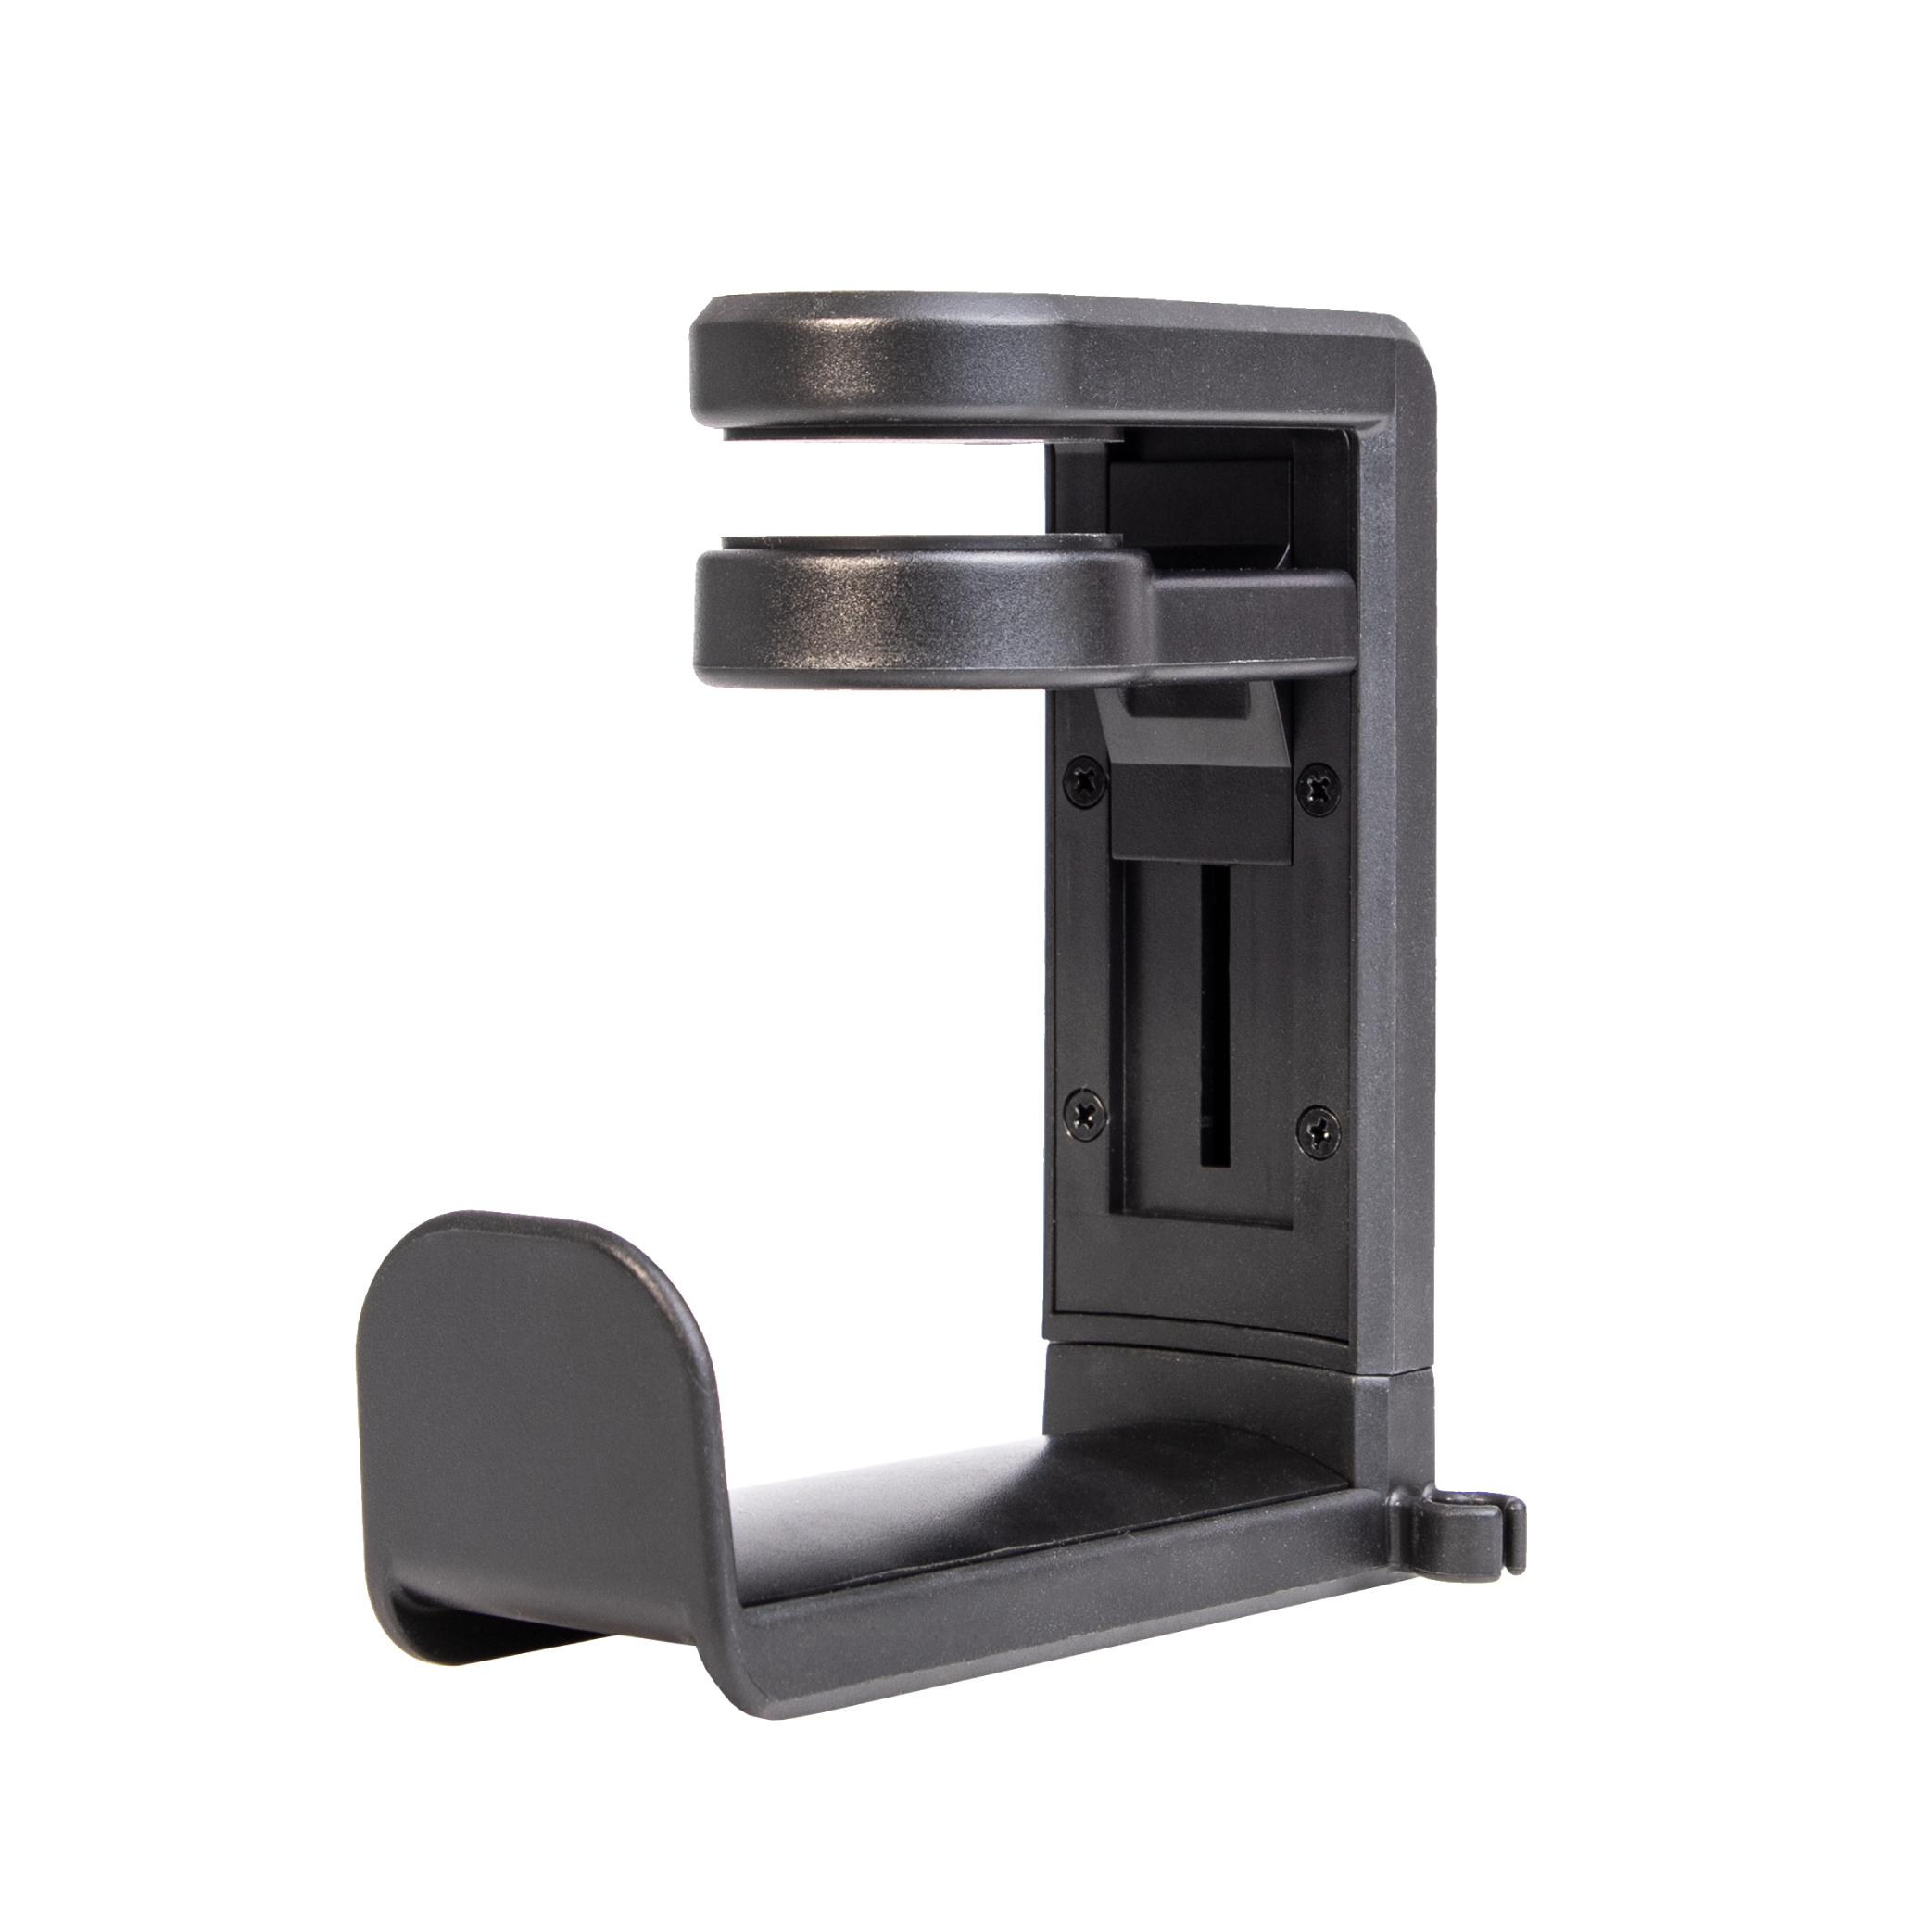 MT-AM05 Headphone Holder - Black